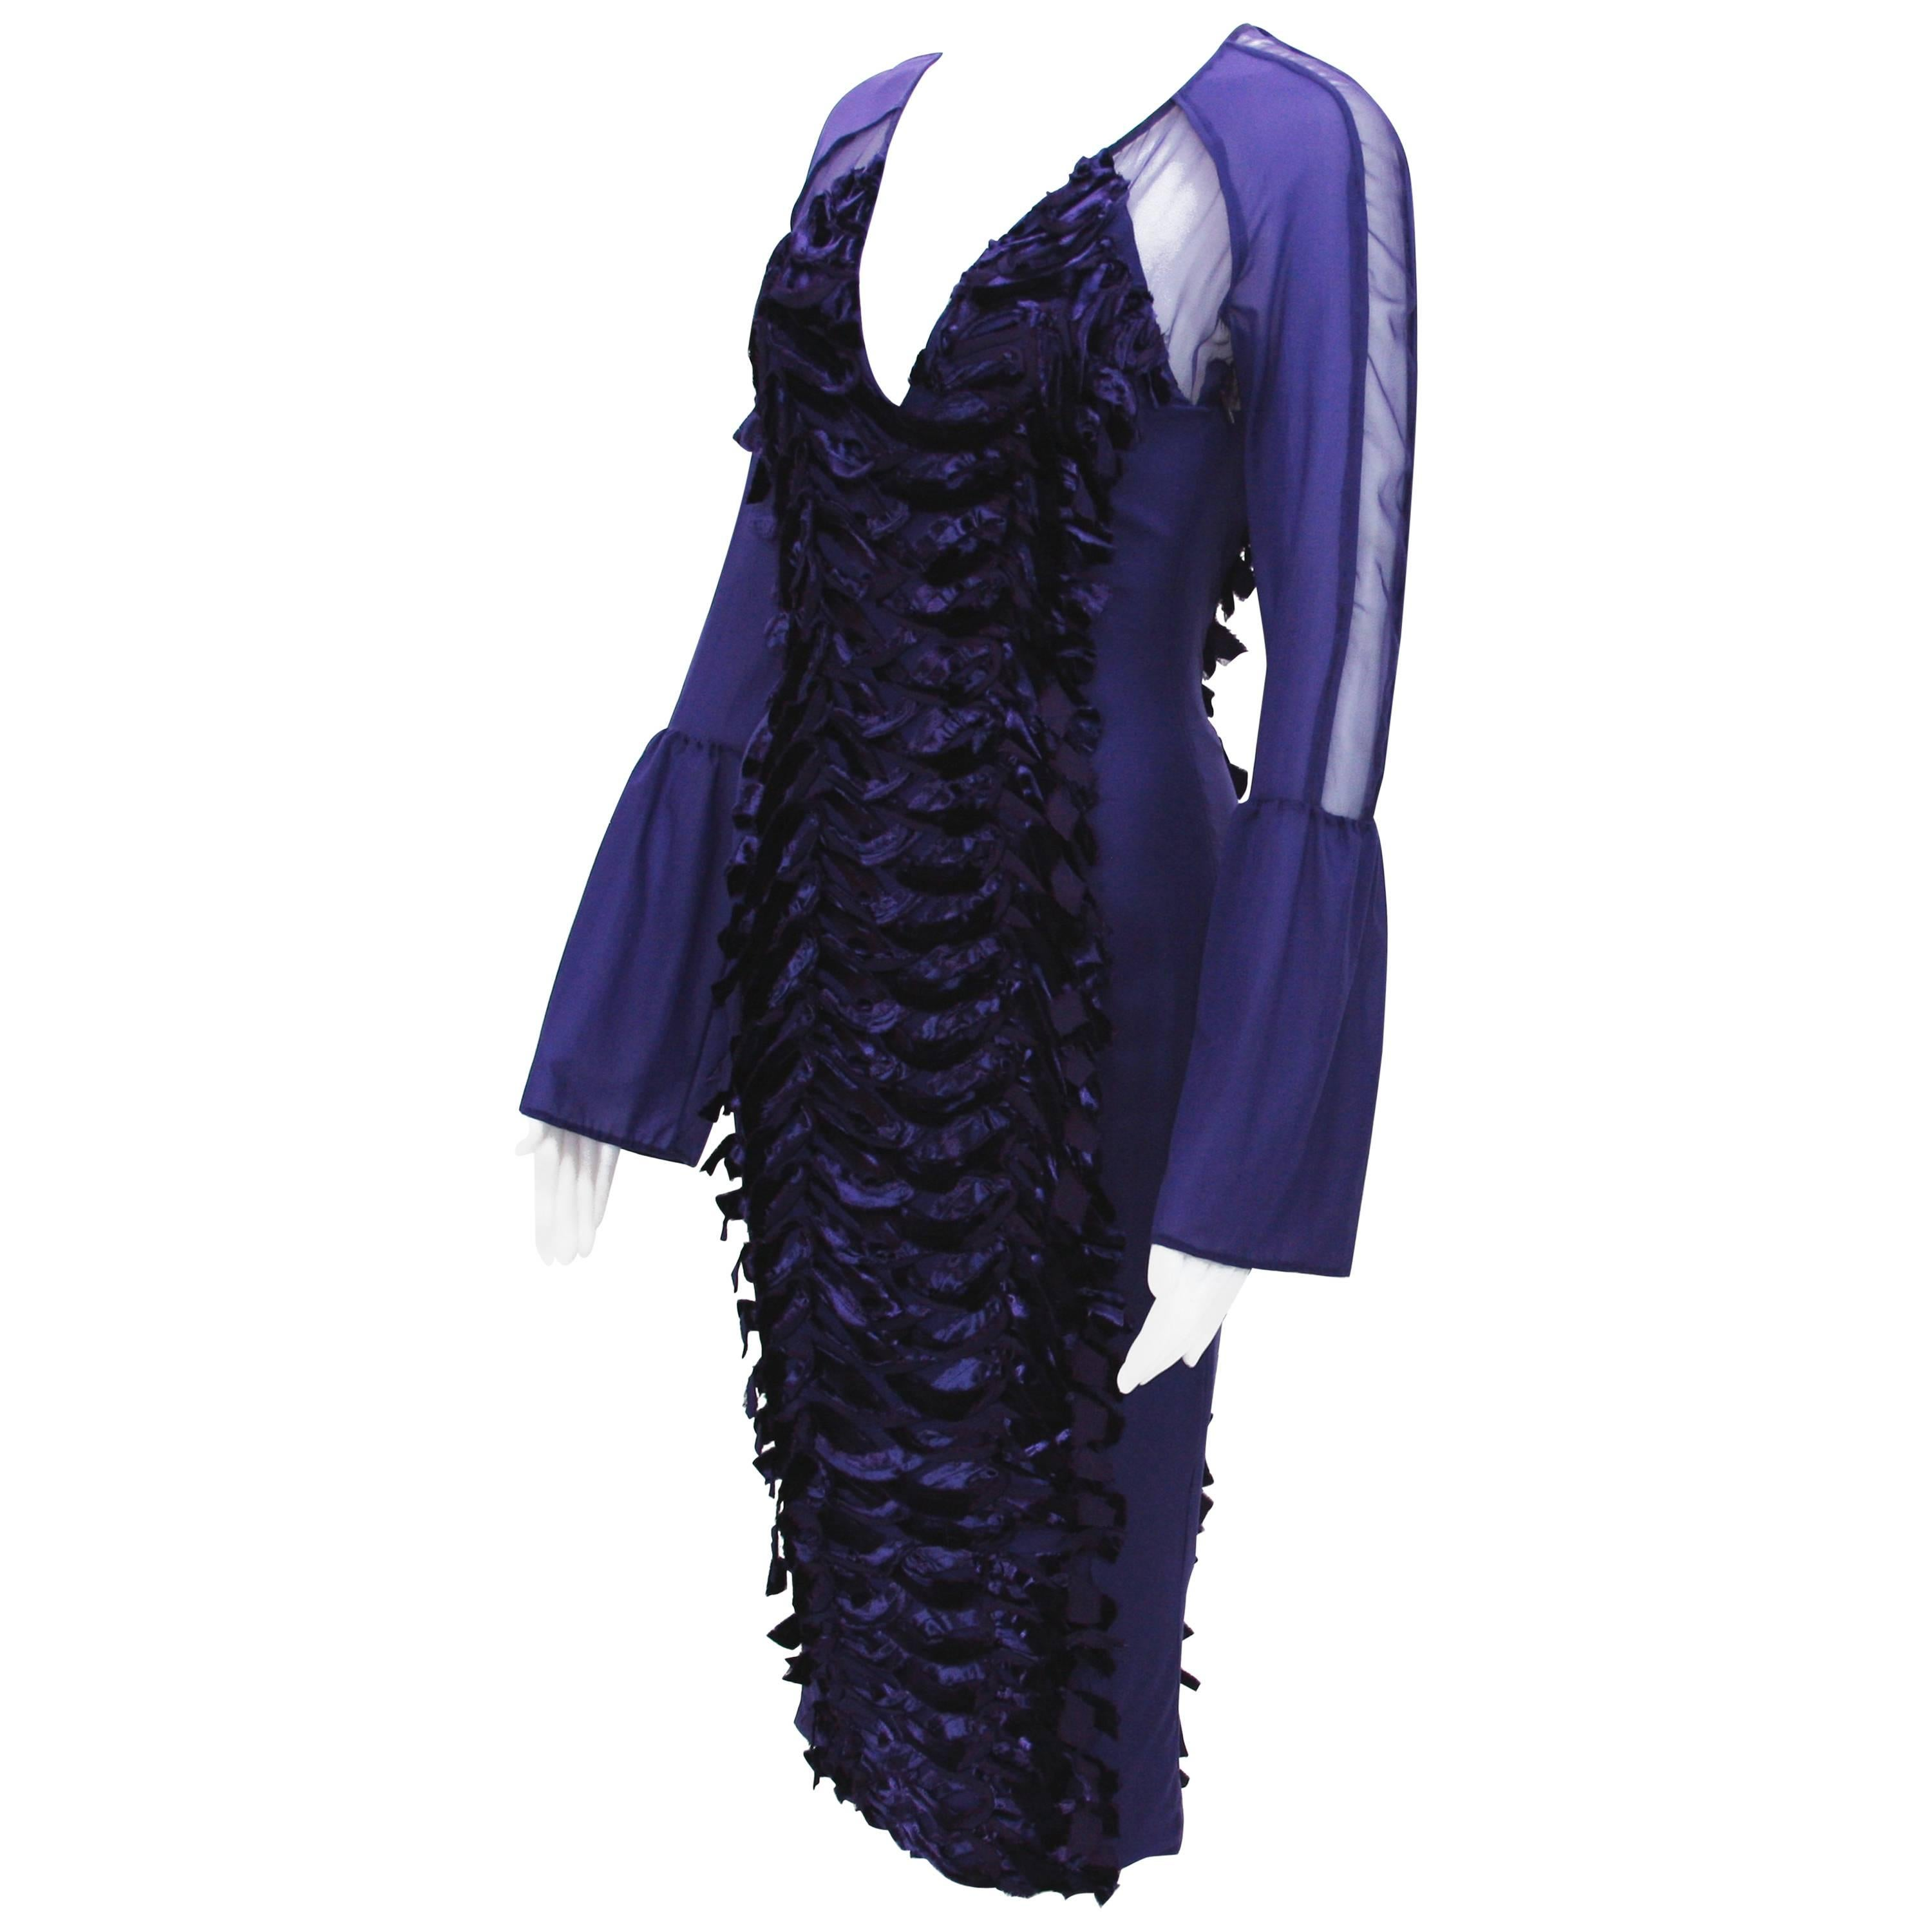 TOM FORD for GUCCI F/W 2004 COLLECTION PURPLE VELVET STRETCH DRESS 40 - 4